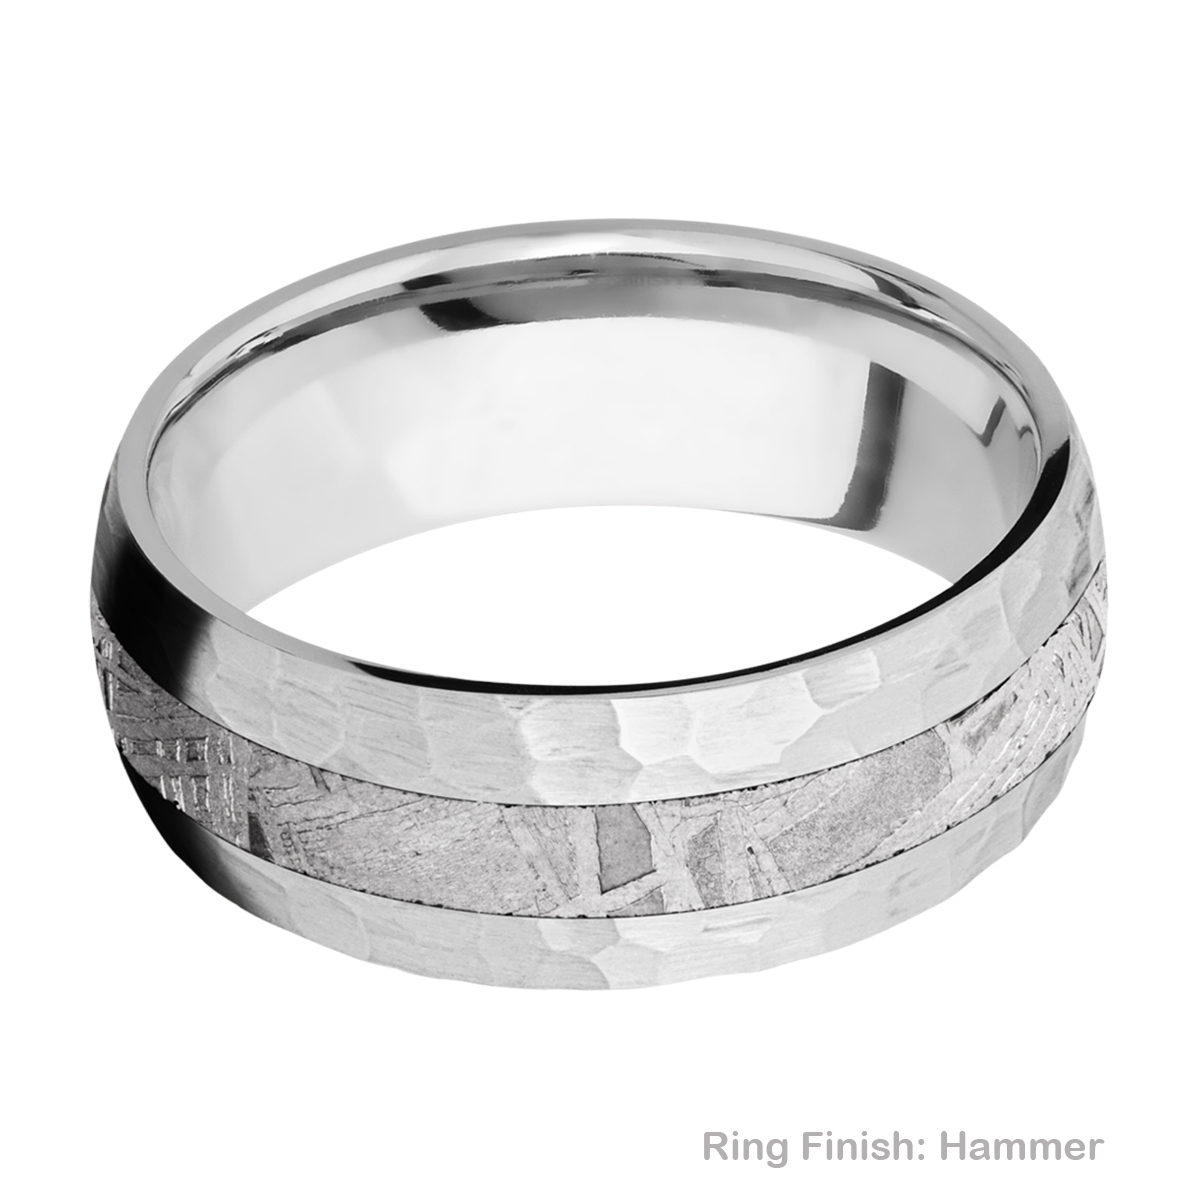 Lashbrook CC8D13/METEORITE Cobalt Chrome Wedding Ring or Band Alternative View 8